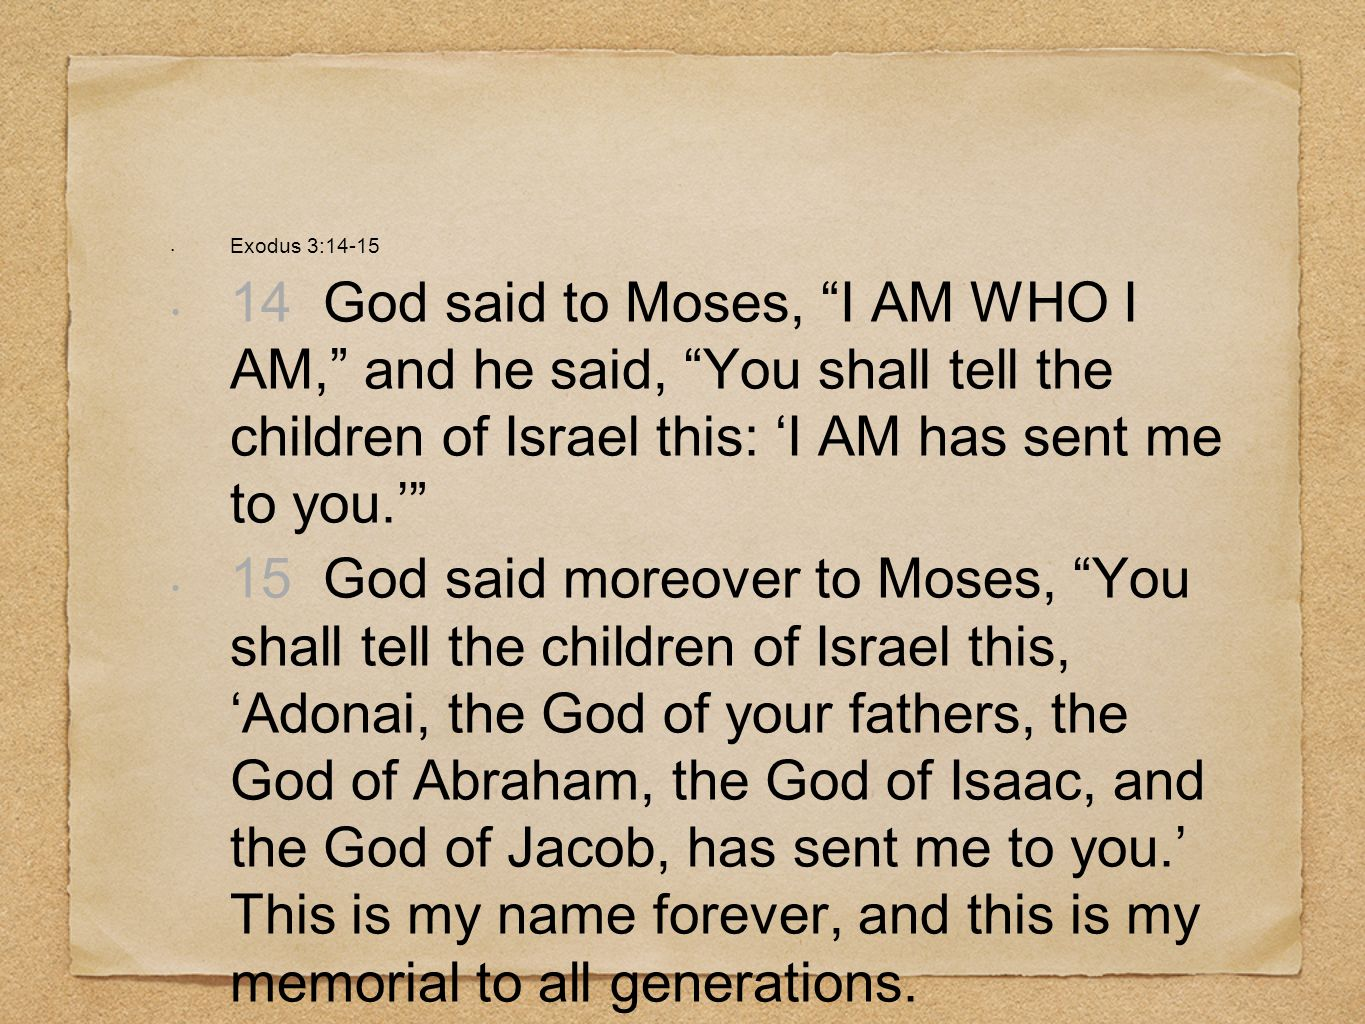 Exodus 3:14-1514 God said to Moses, I AM WHO I AM, and he said, You shall tell the children of Israel this: 'I AM has sent me to you.'